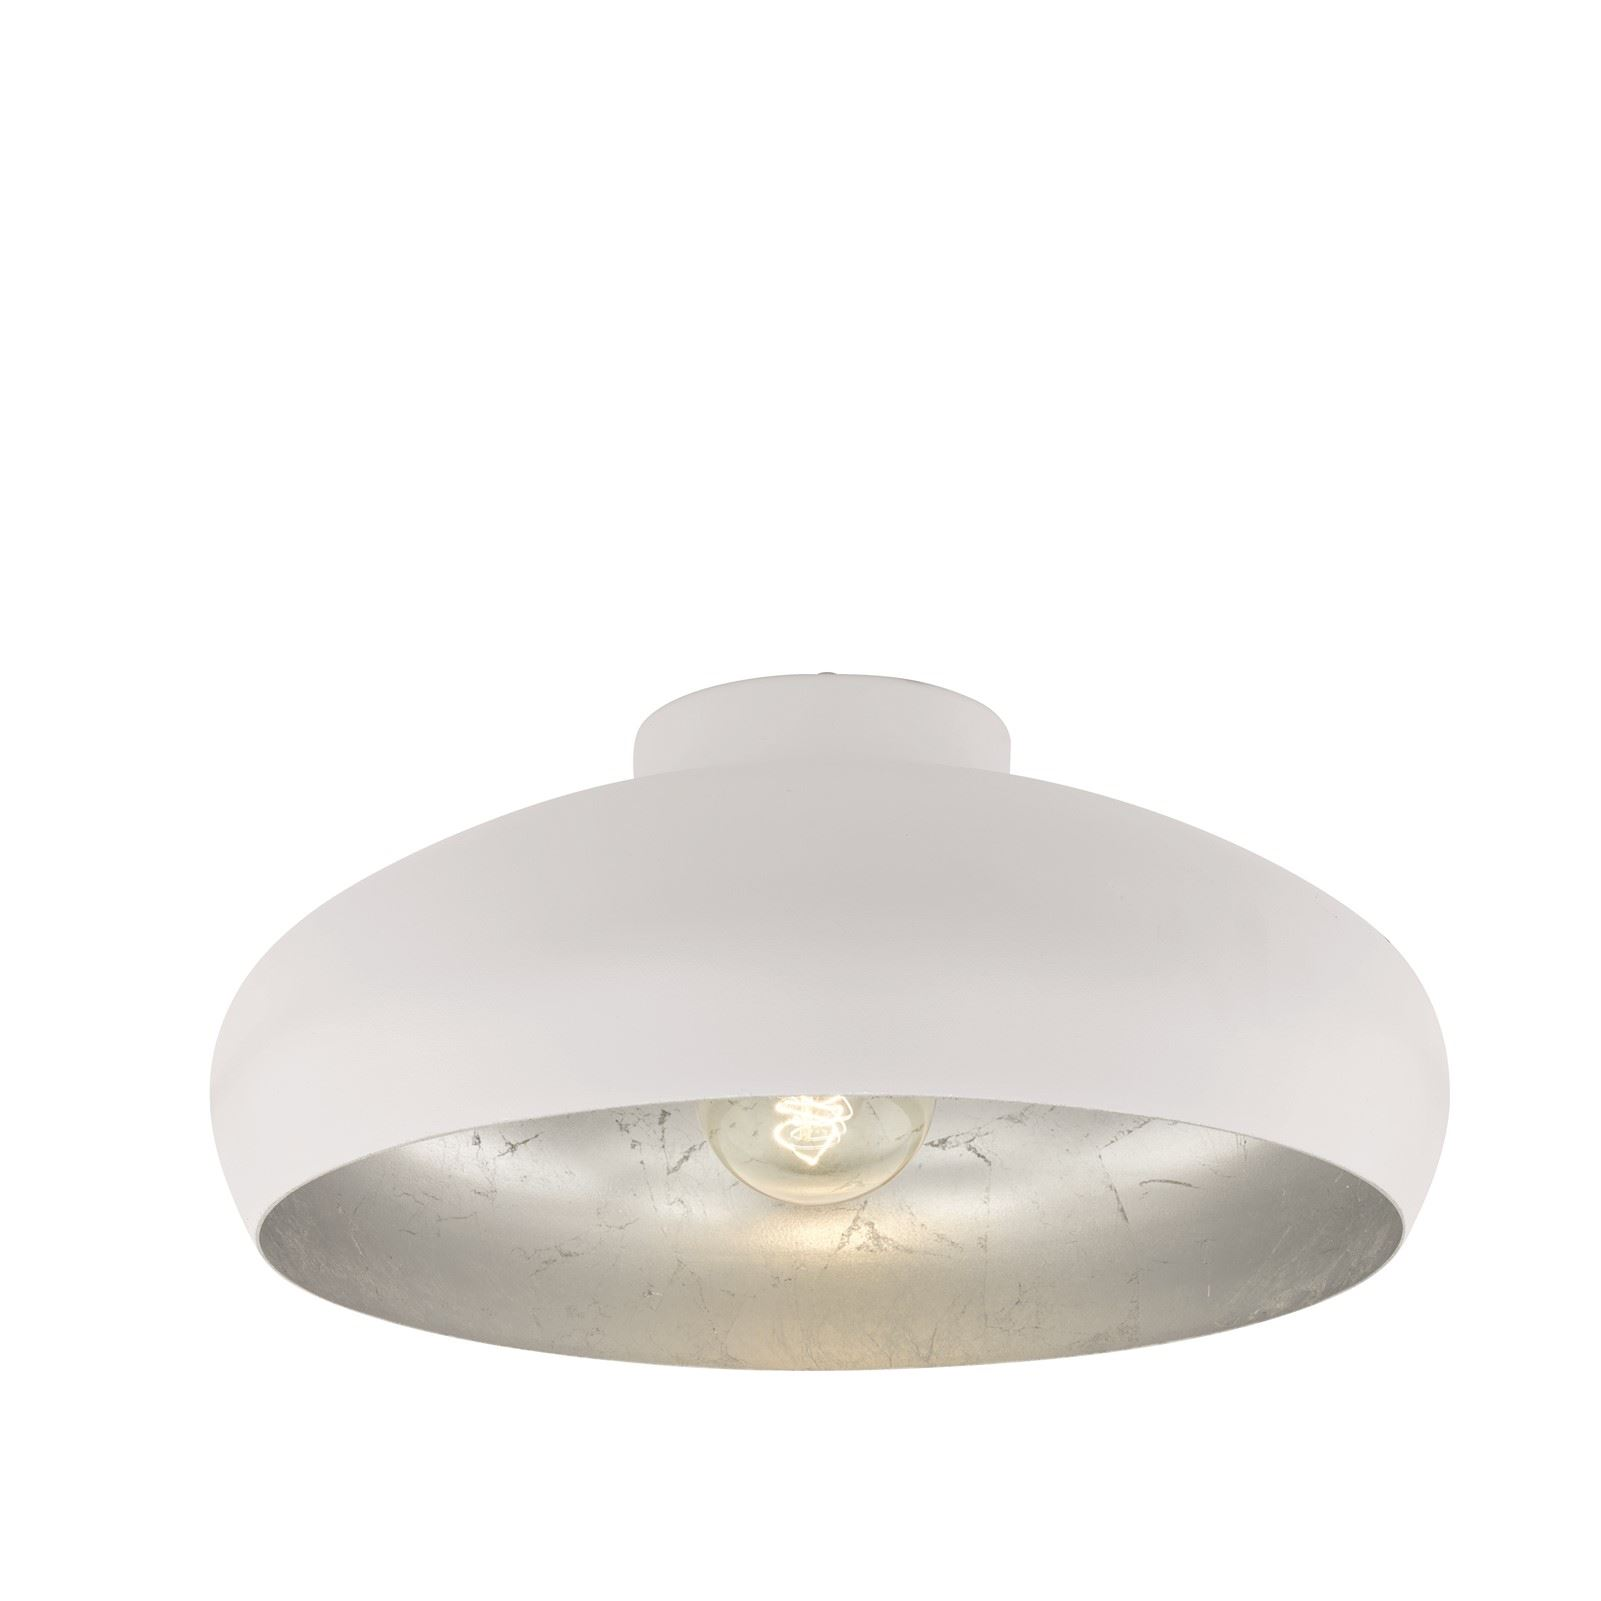 Mogano 1 Ceiling Light E27 White, Silver Without Switch